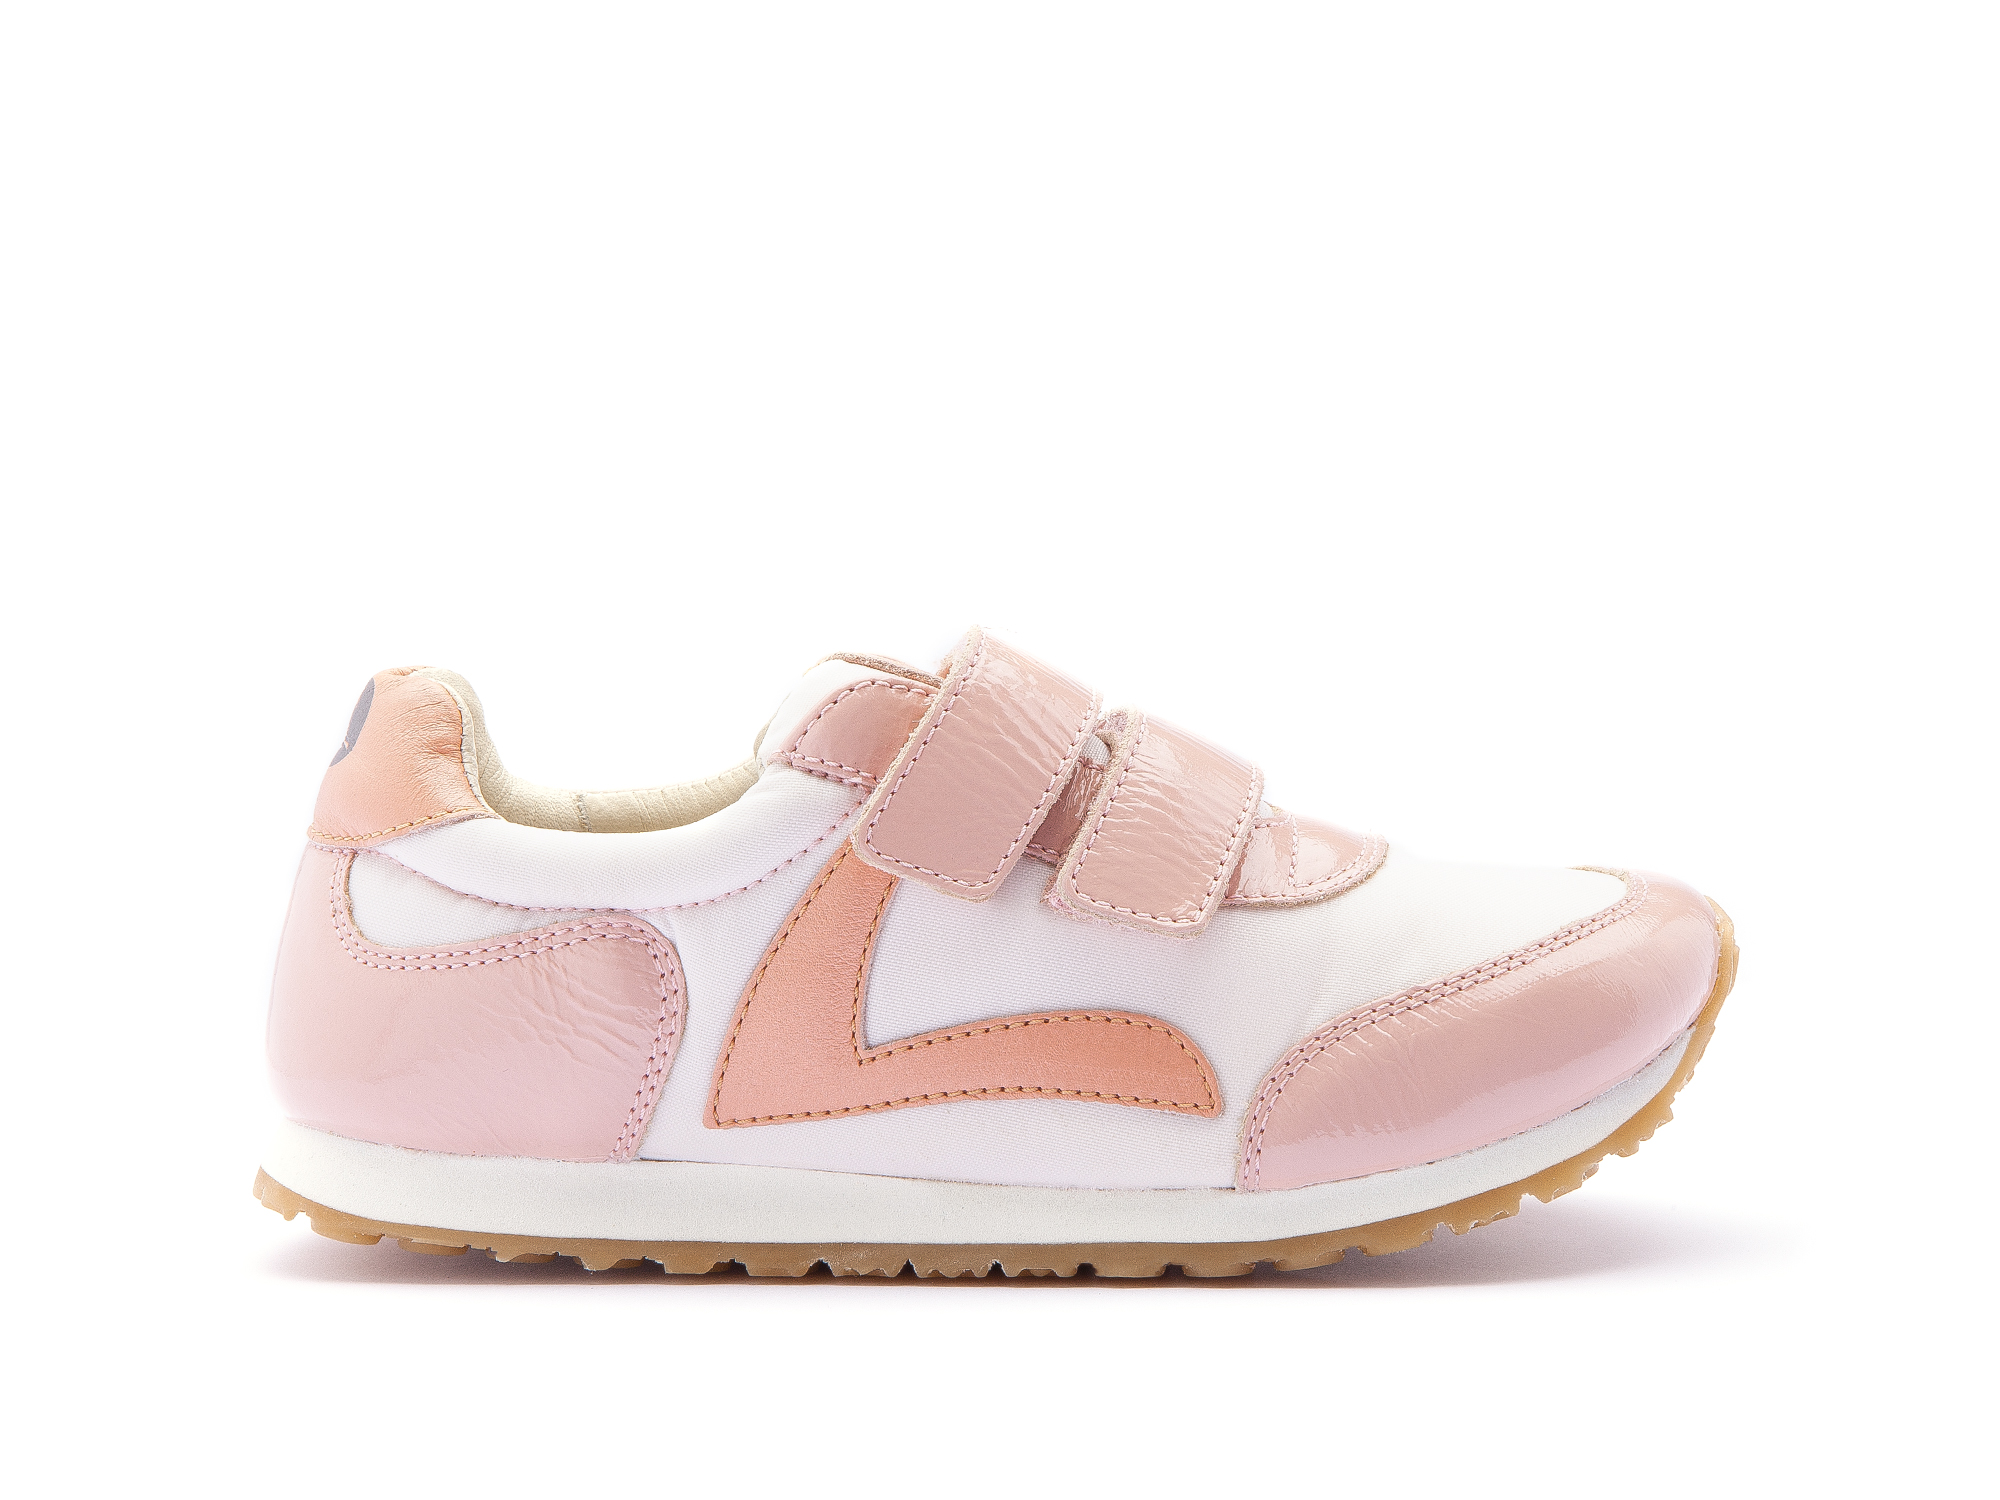 Tênis Jump Light Pink Nylon/ Patent Blush Junior 4 à 8 anos - 1